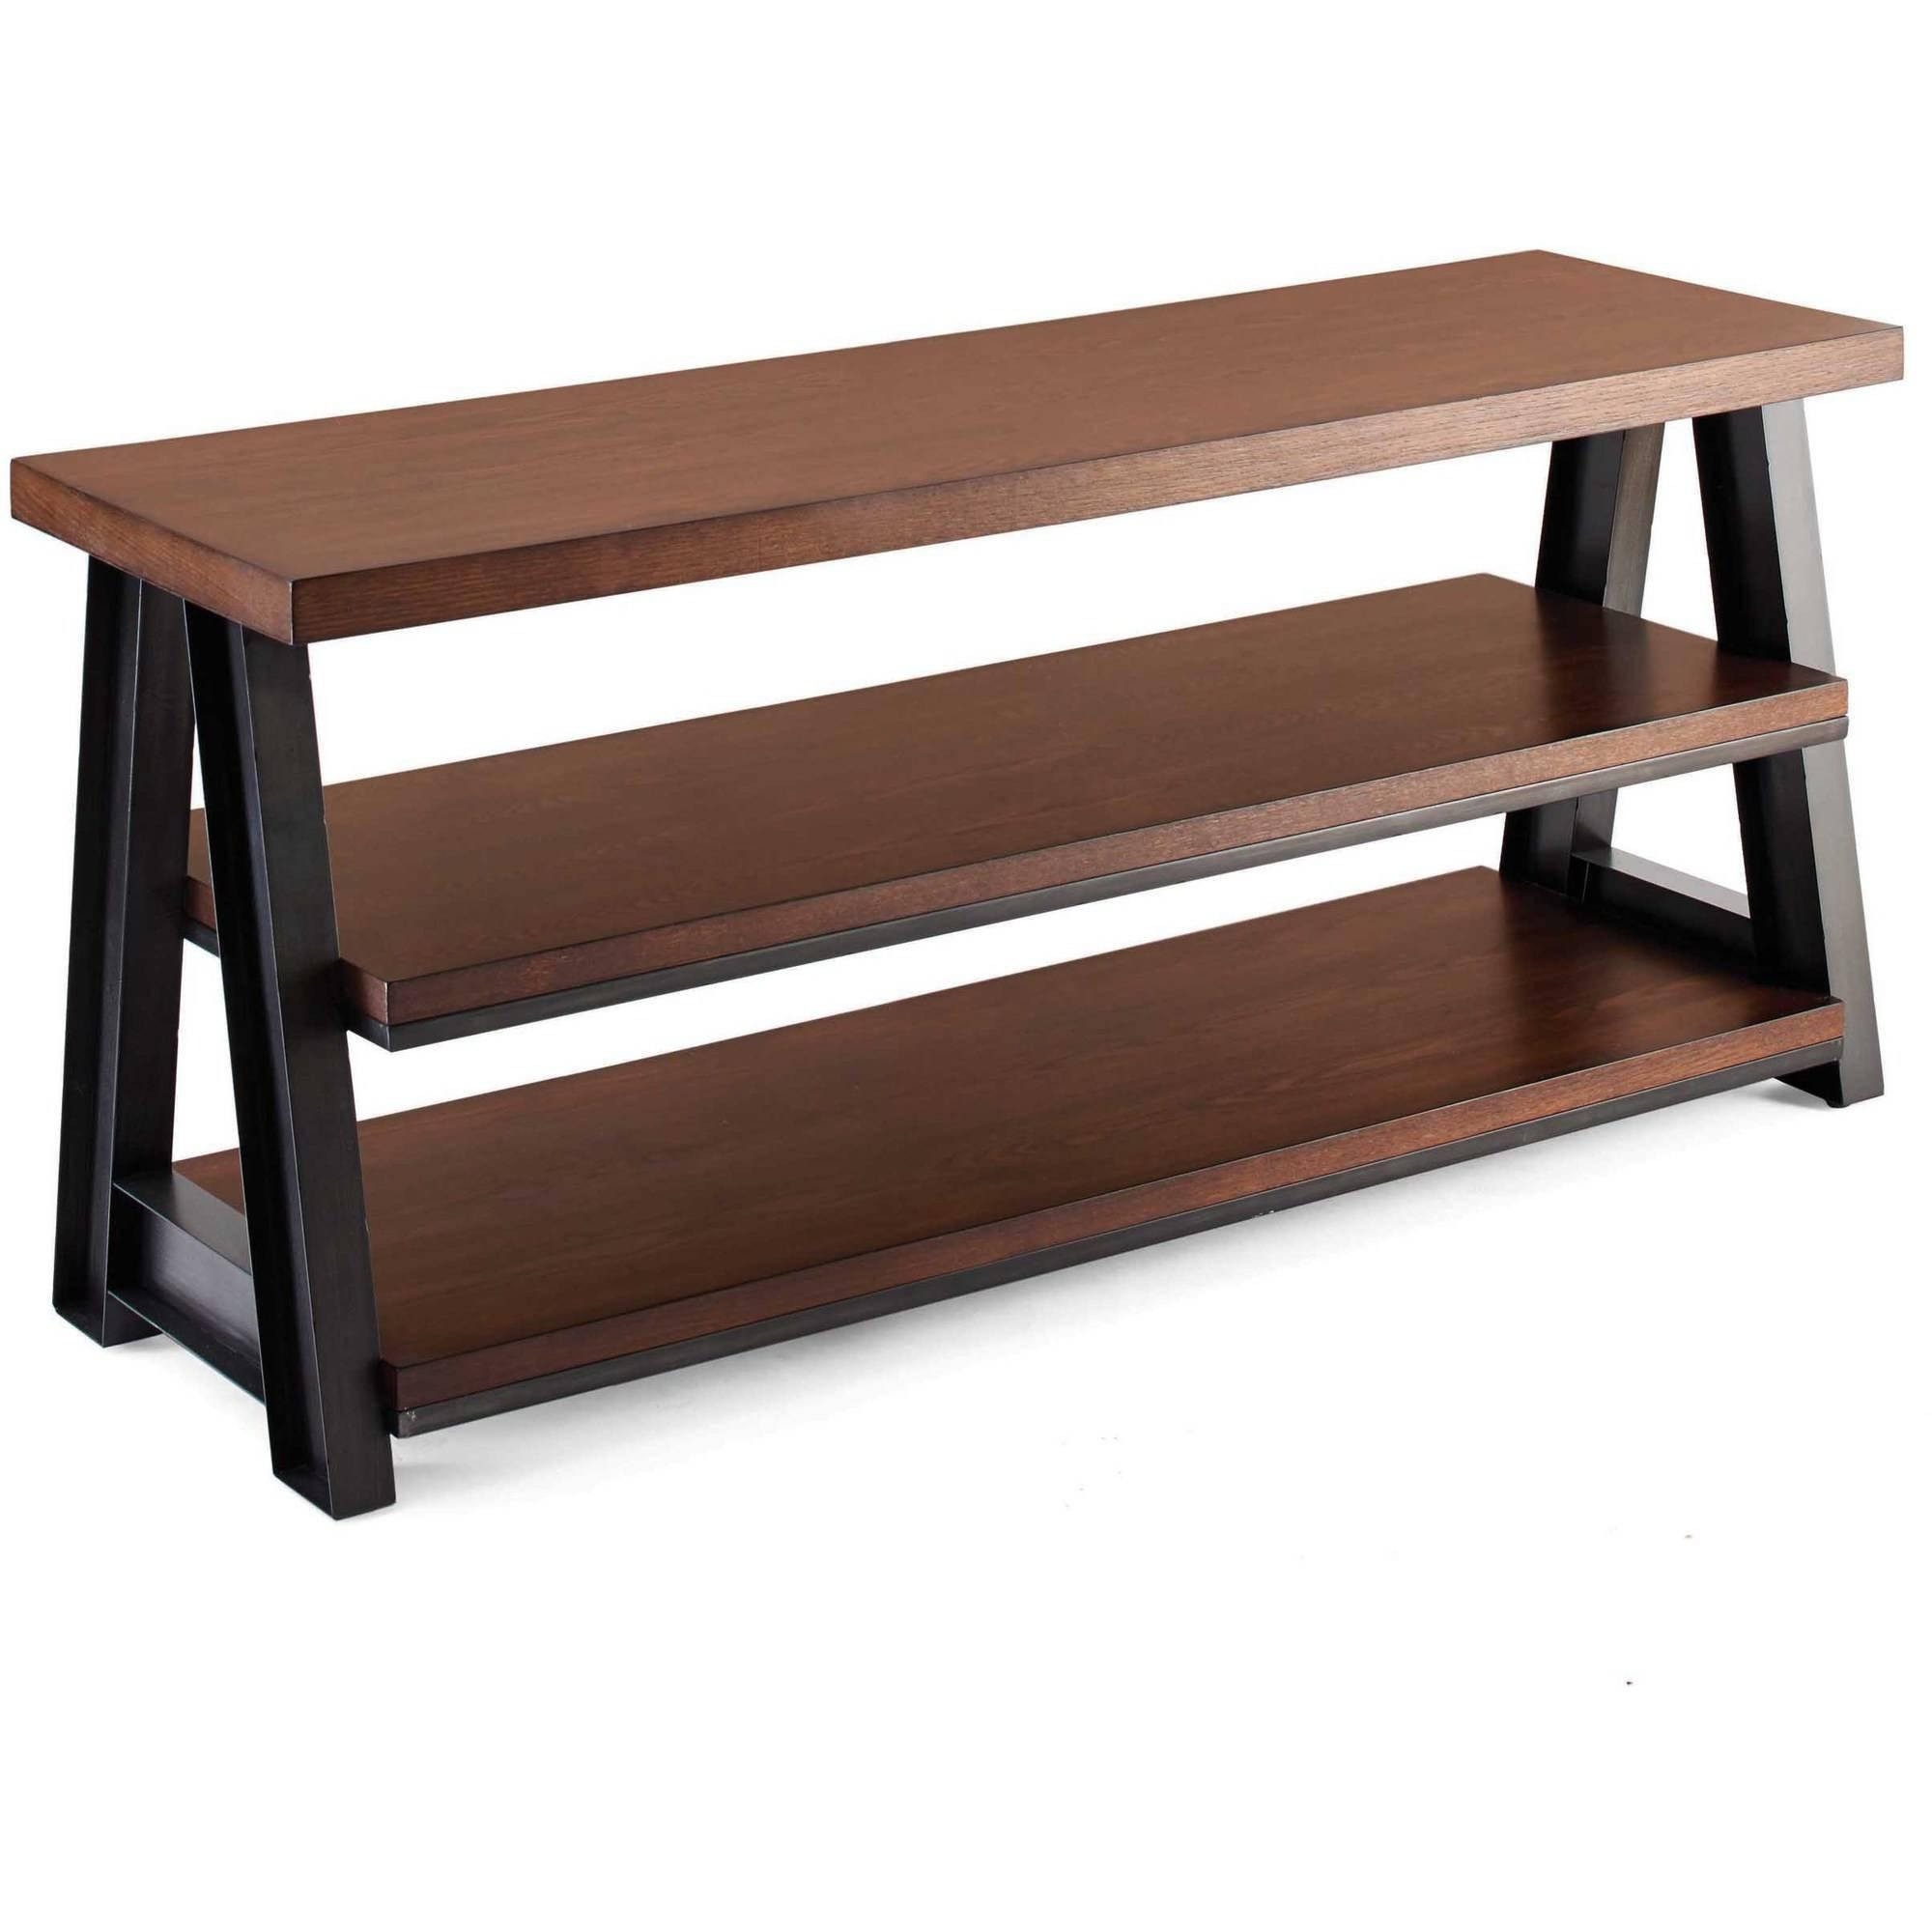 Better Homes And Gardens Tv Brown 3 In 1 Mercer Stand For Tvs Up Pertaining To Popular Radiator Cover Tv Stand (View 9 of 15)